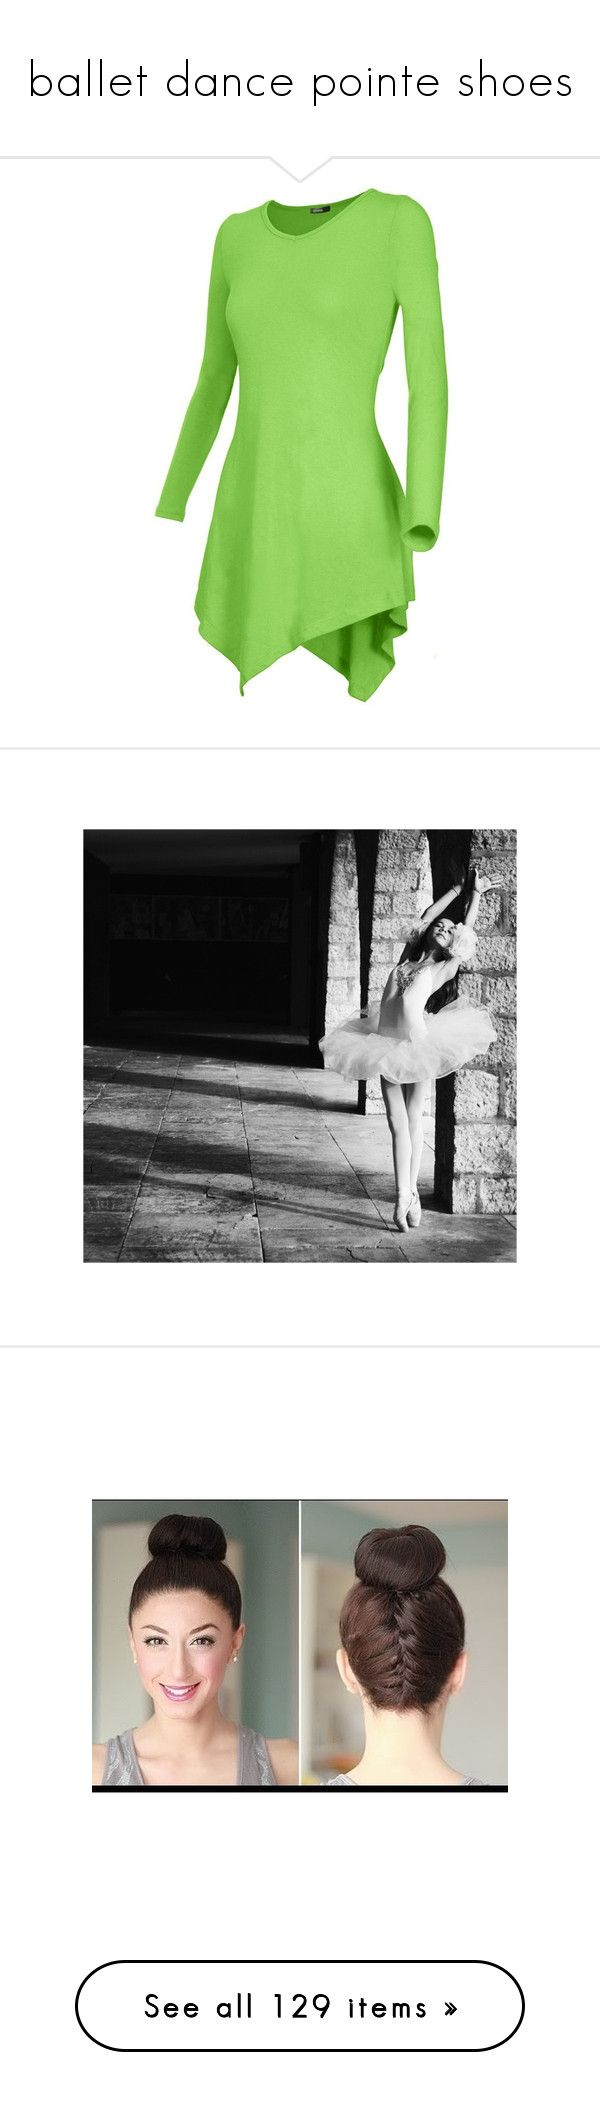 """""""ballet dance pointe shoes"""" by helena-lowry ❤ liked on Polyvore featuring tops, tunics, shirts, long sleeve tops, green top, green long sleeve top, green long sleeve shirt, green shirt, dance and ballet"""